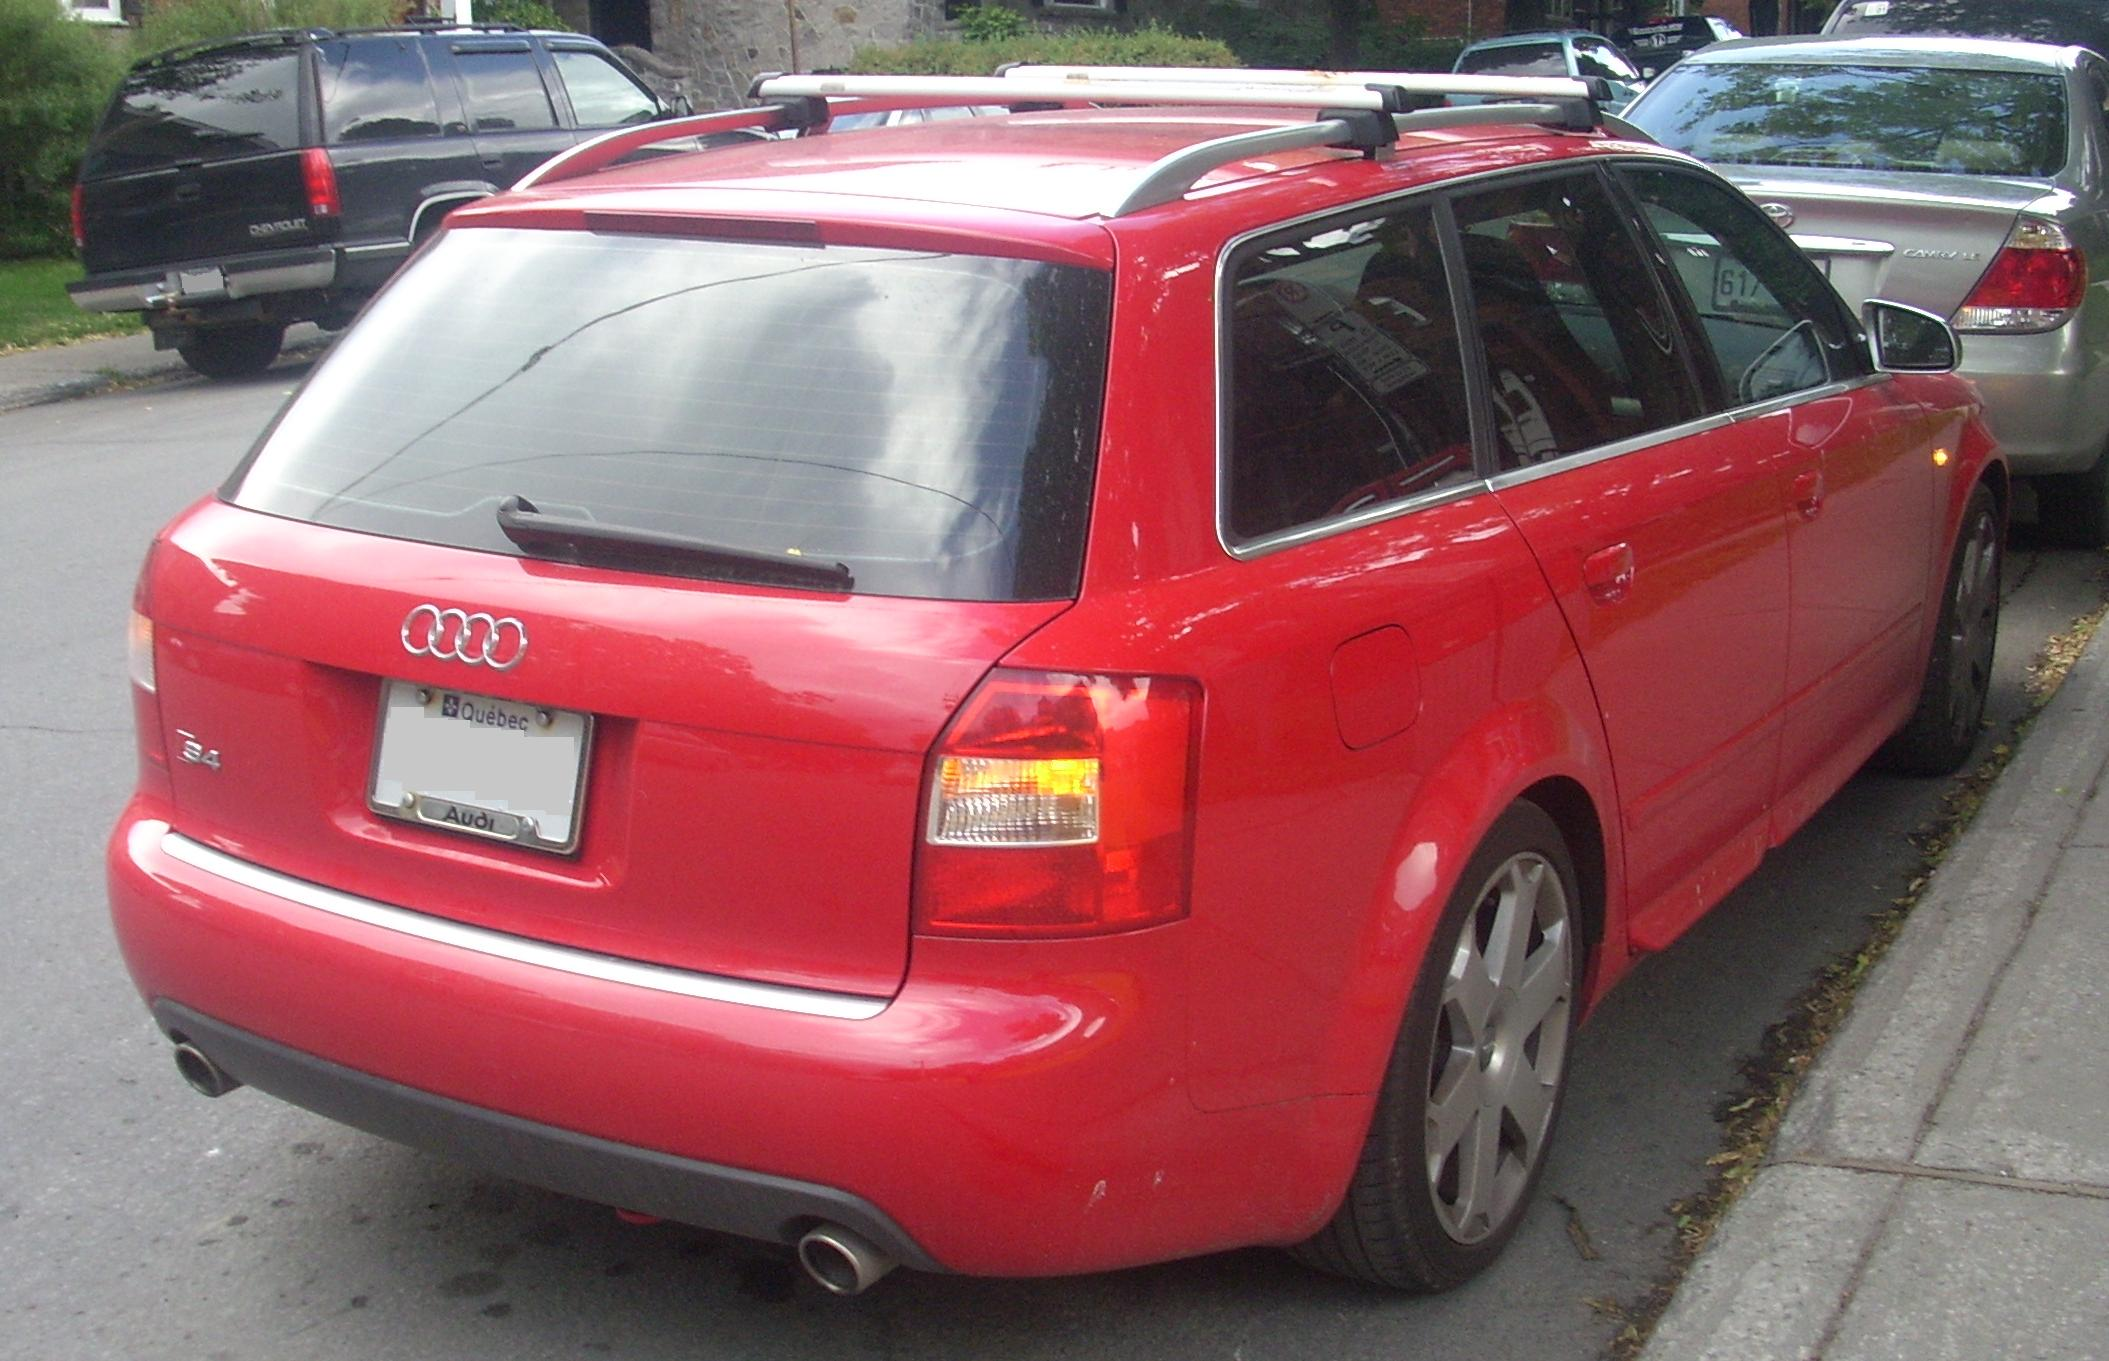 2002 Audi S4 User Reviews Cargurus Where Are Fuses And Battery In Fuse Box 02 A4 File0002 Avant Wikimedia Commons